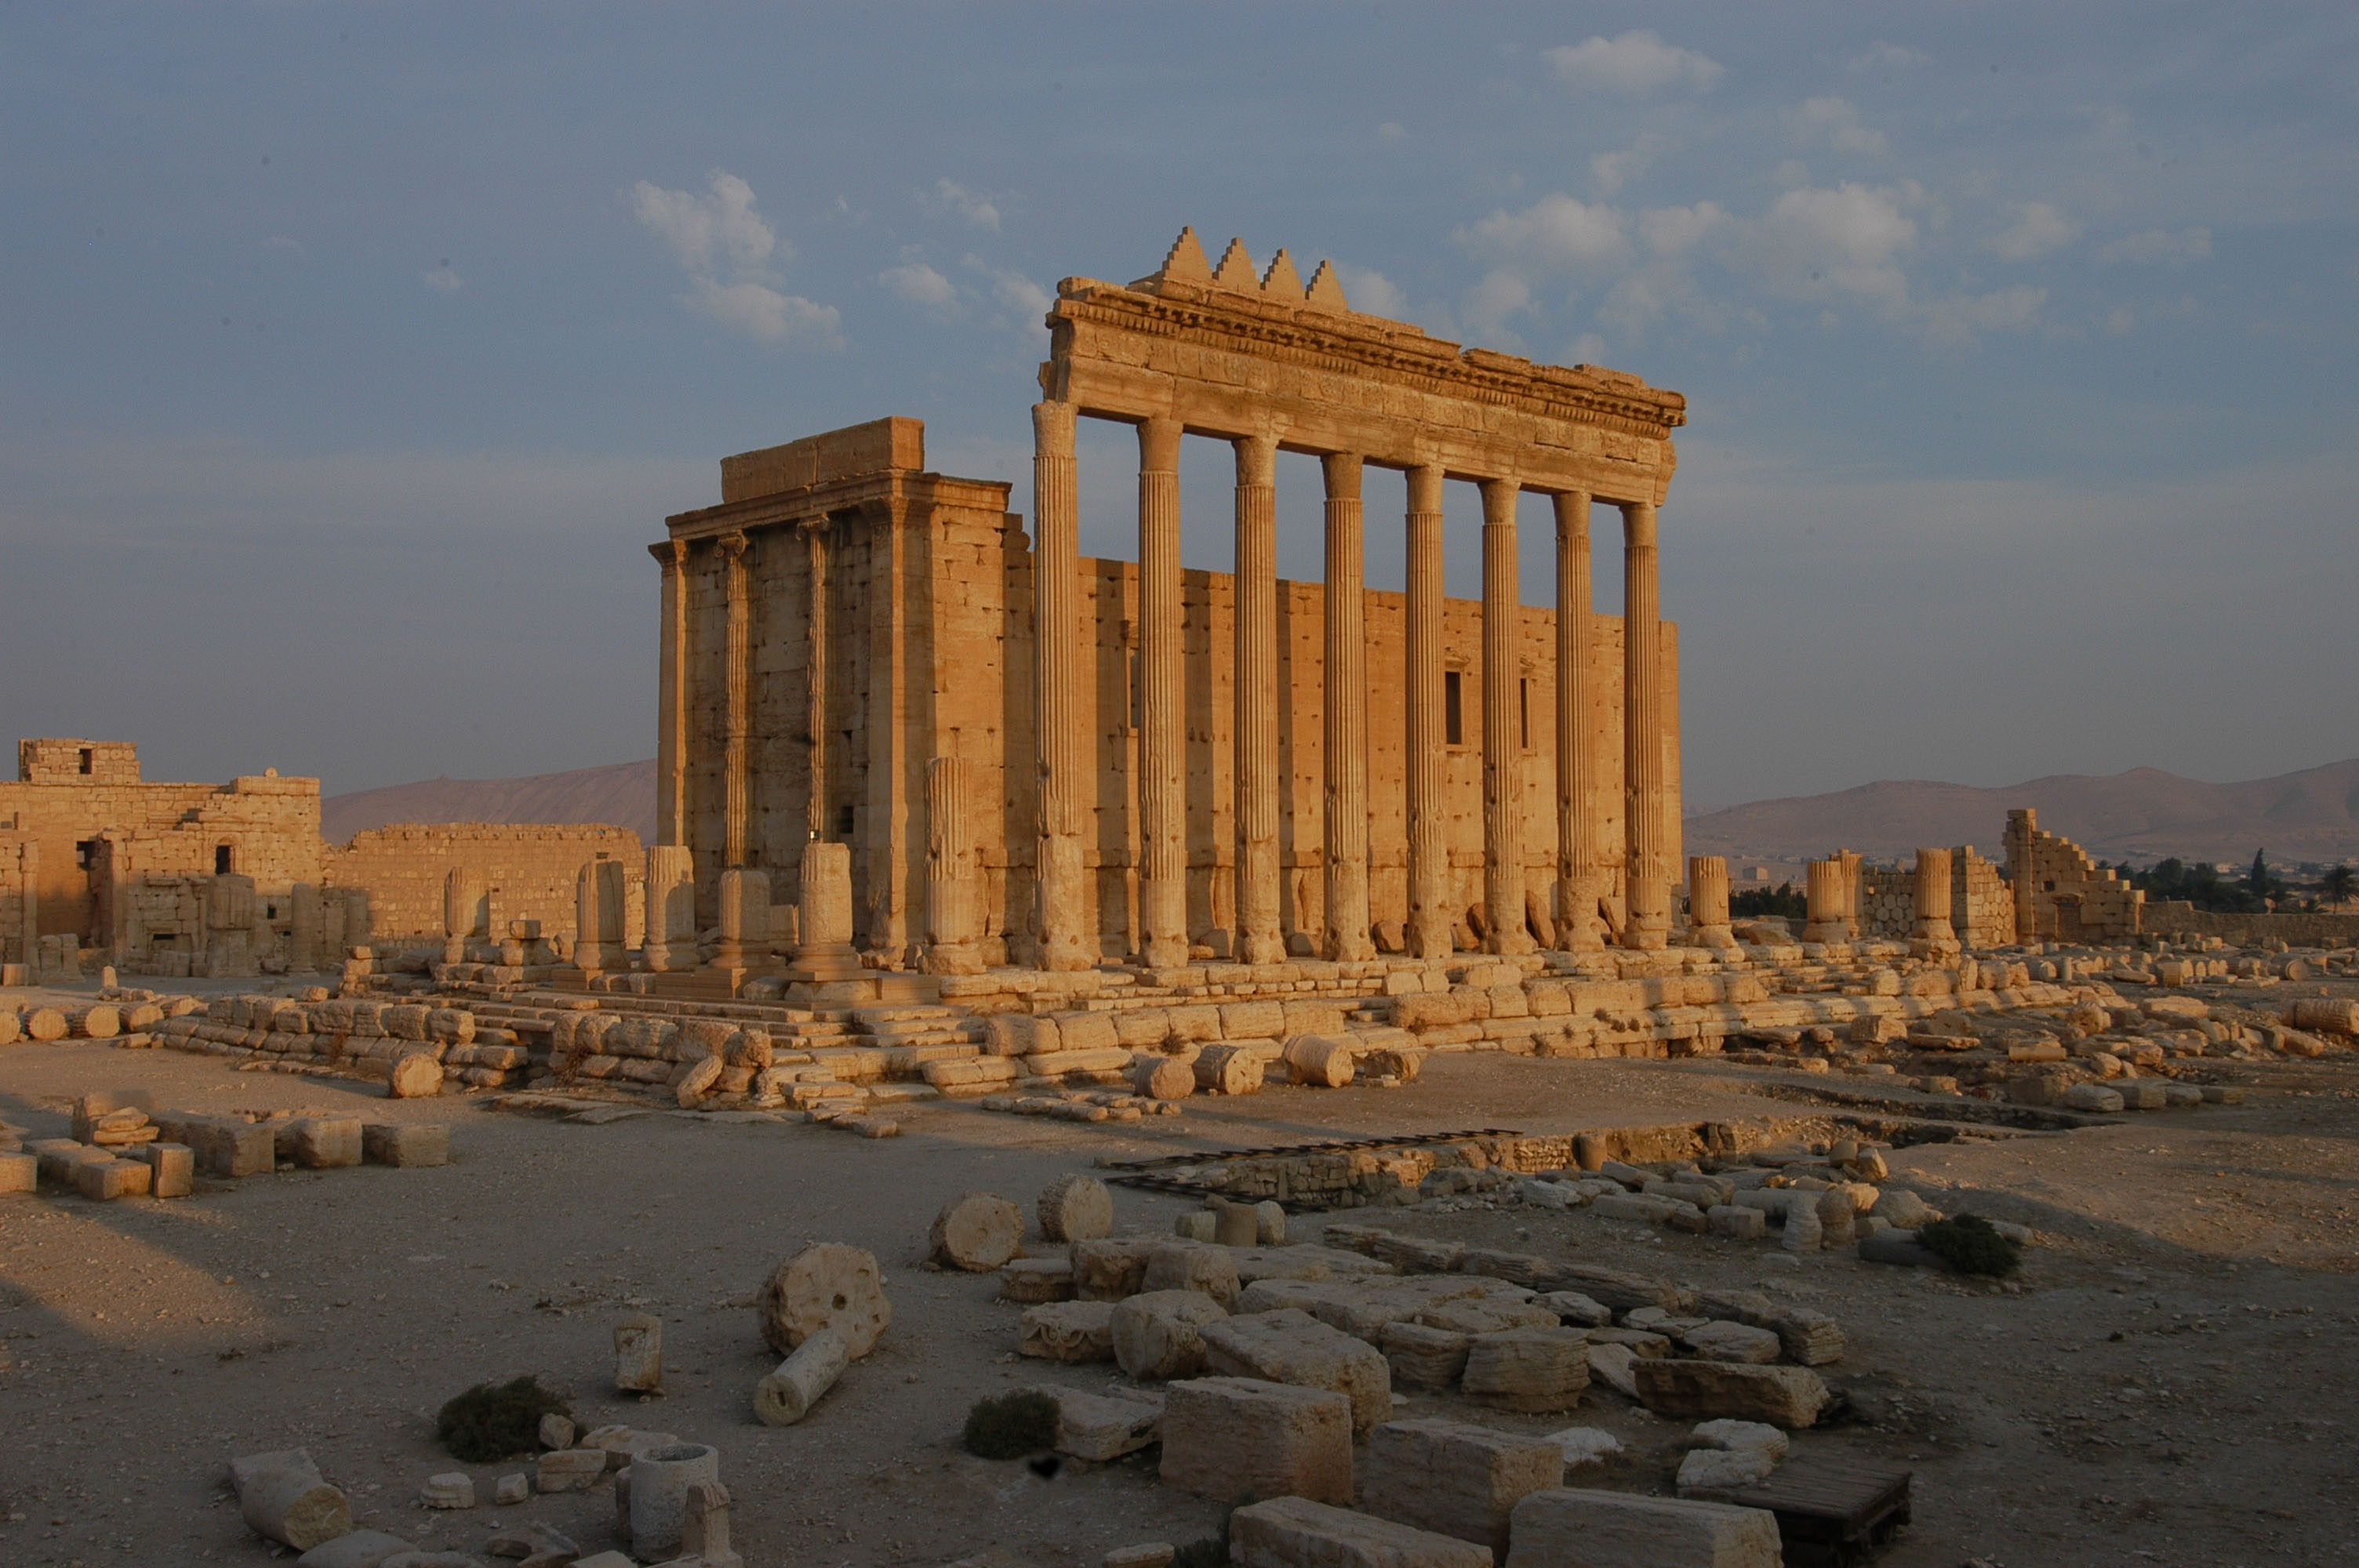 Cover for: 'We should do nothing!' On the history, destruction and rebuilding of Palmyra